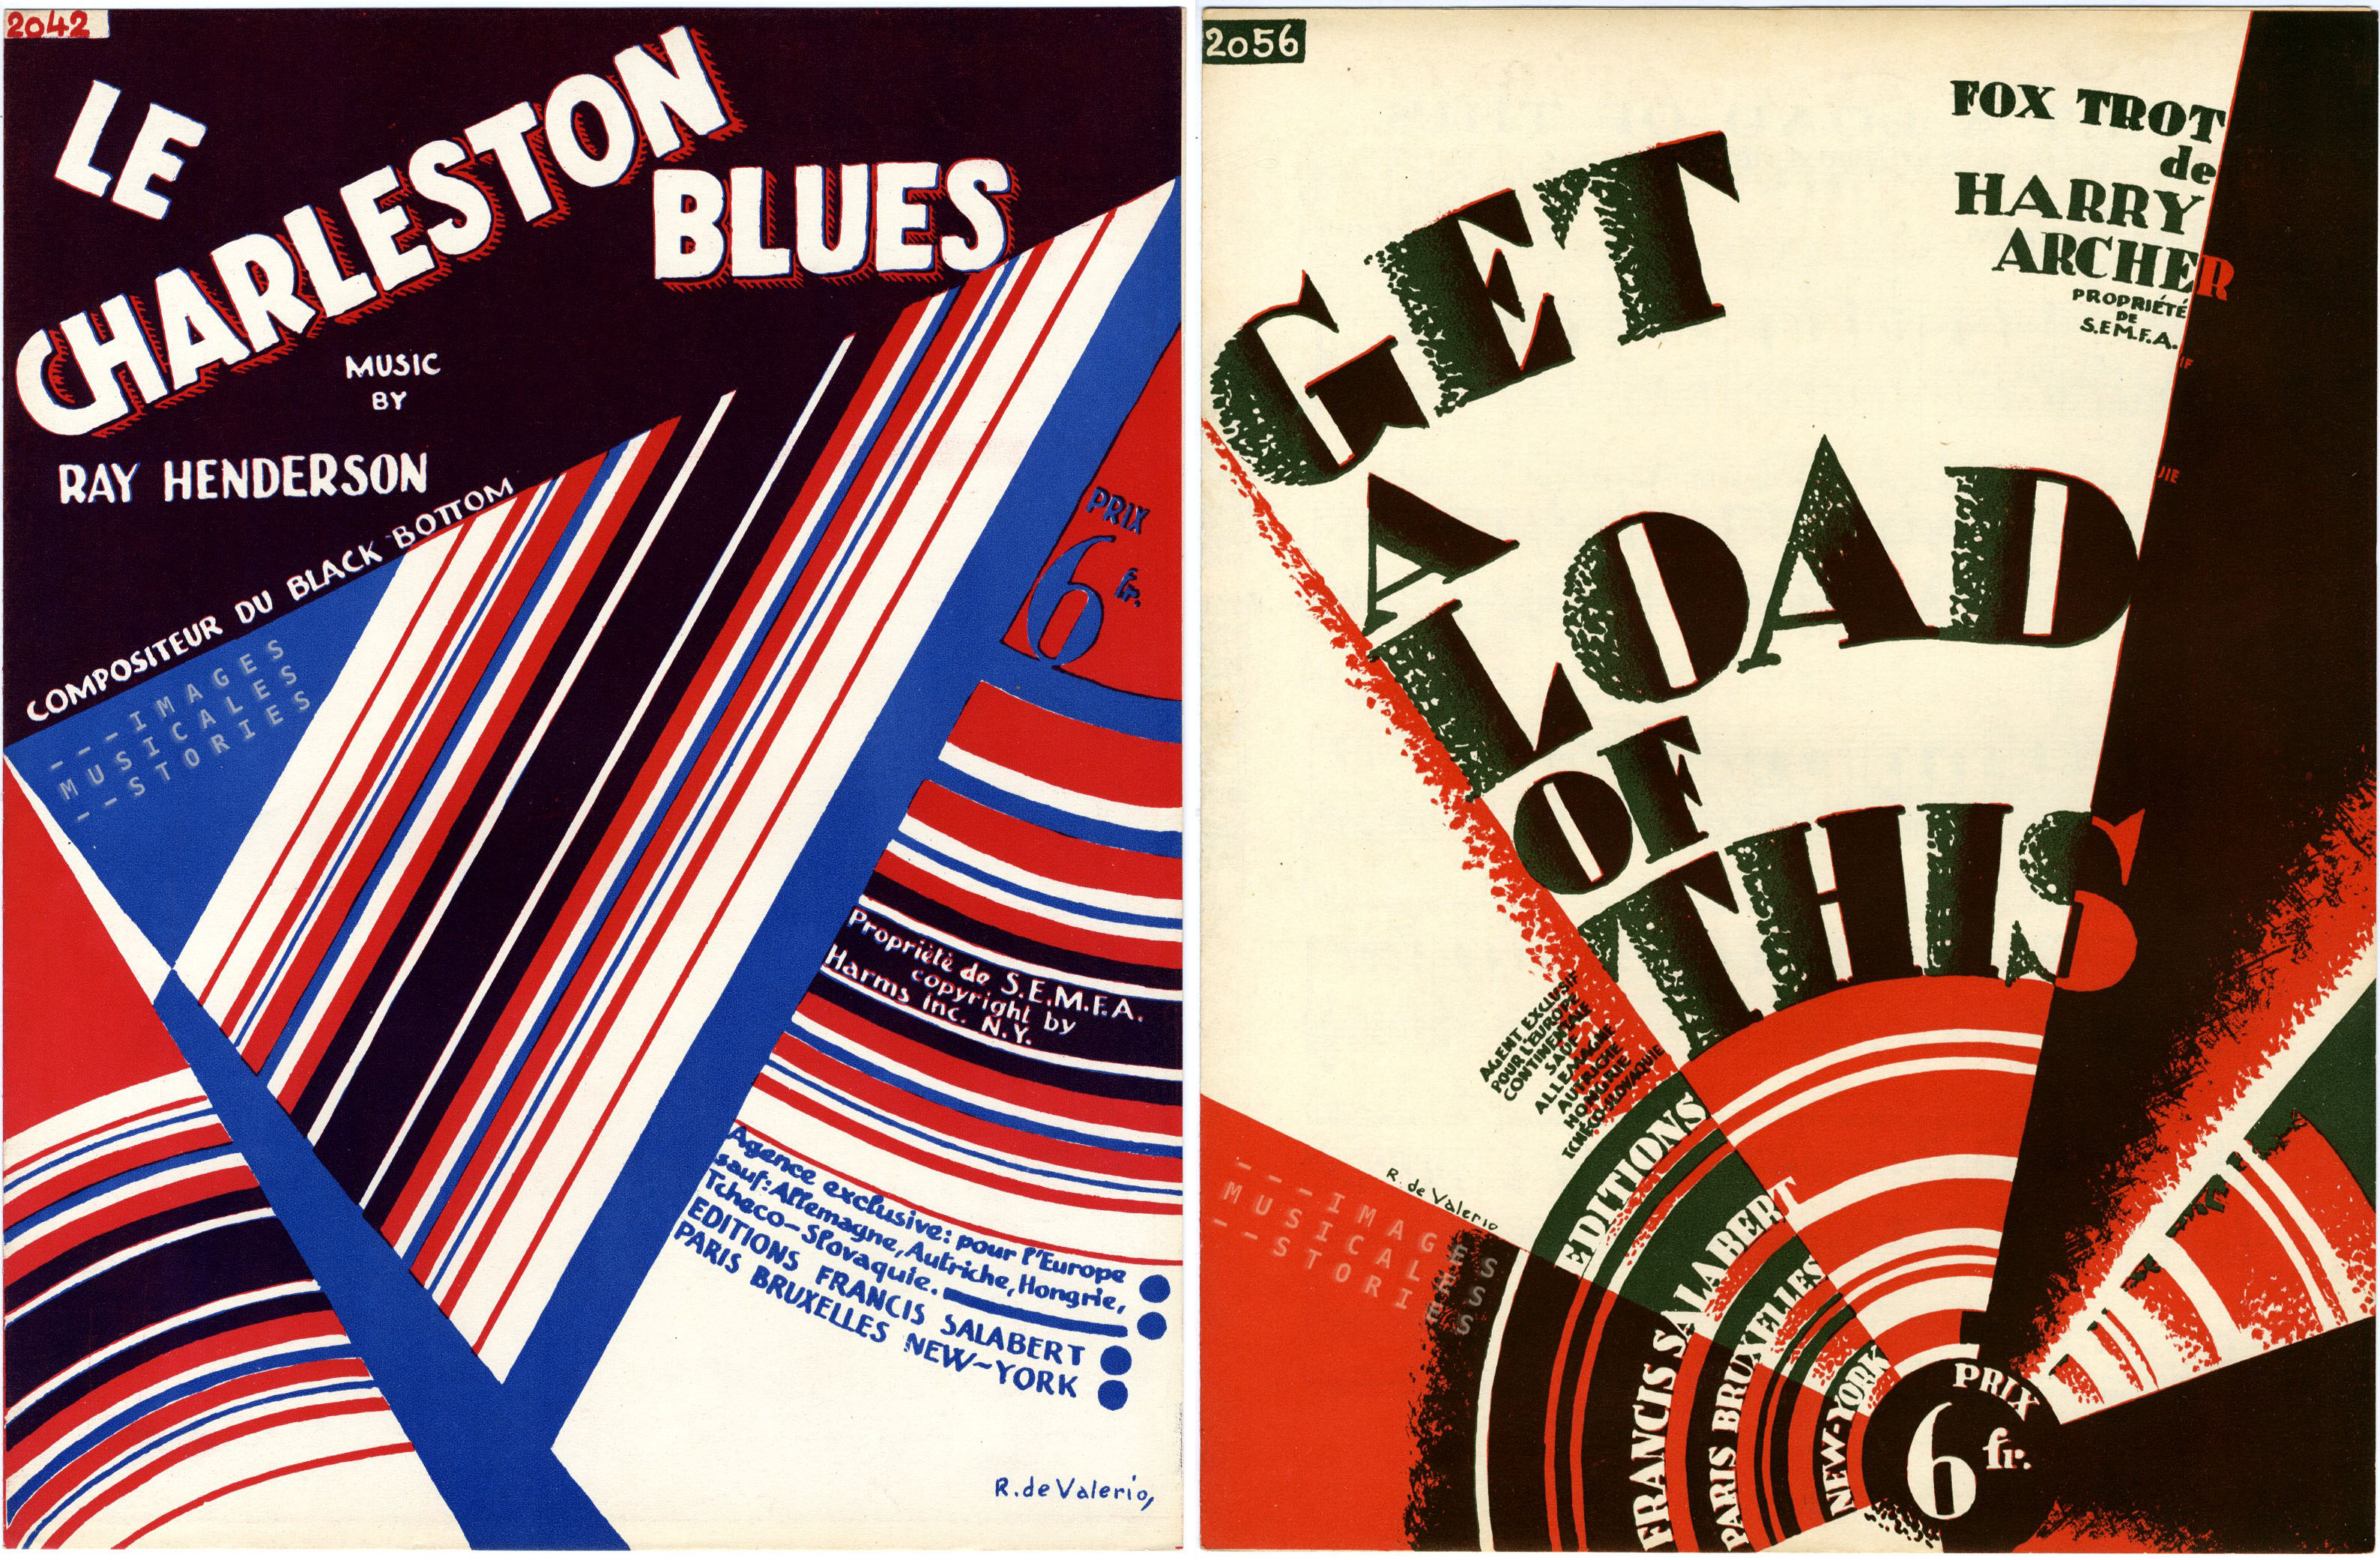 Abstract sheet music covers illustrated by Roger de Valerio.